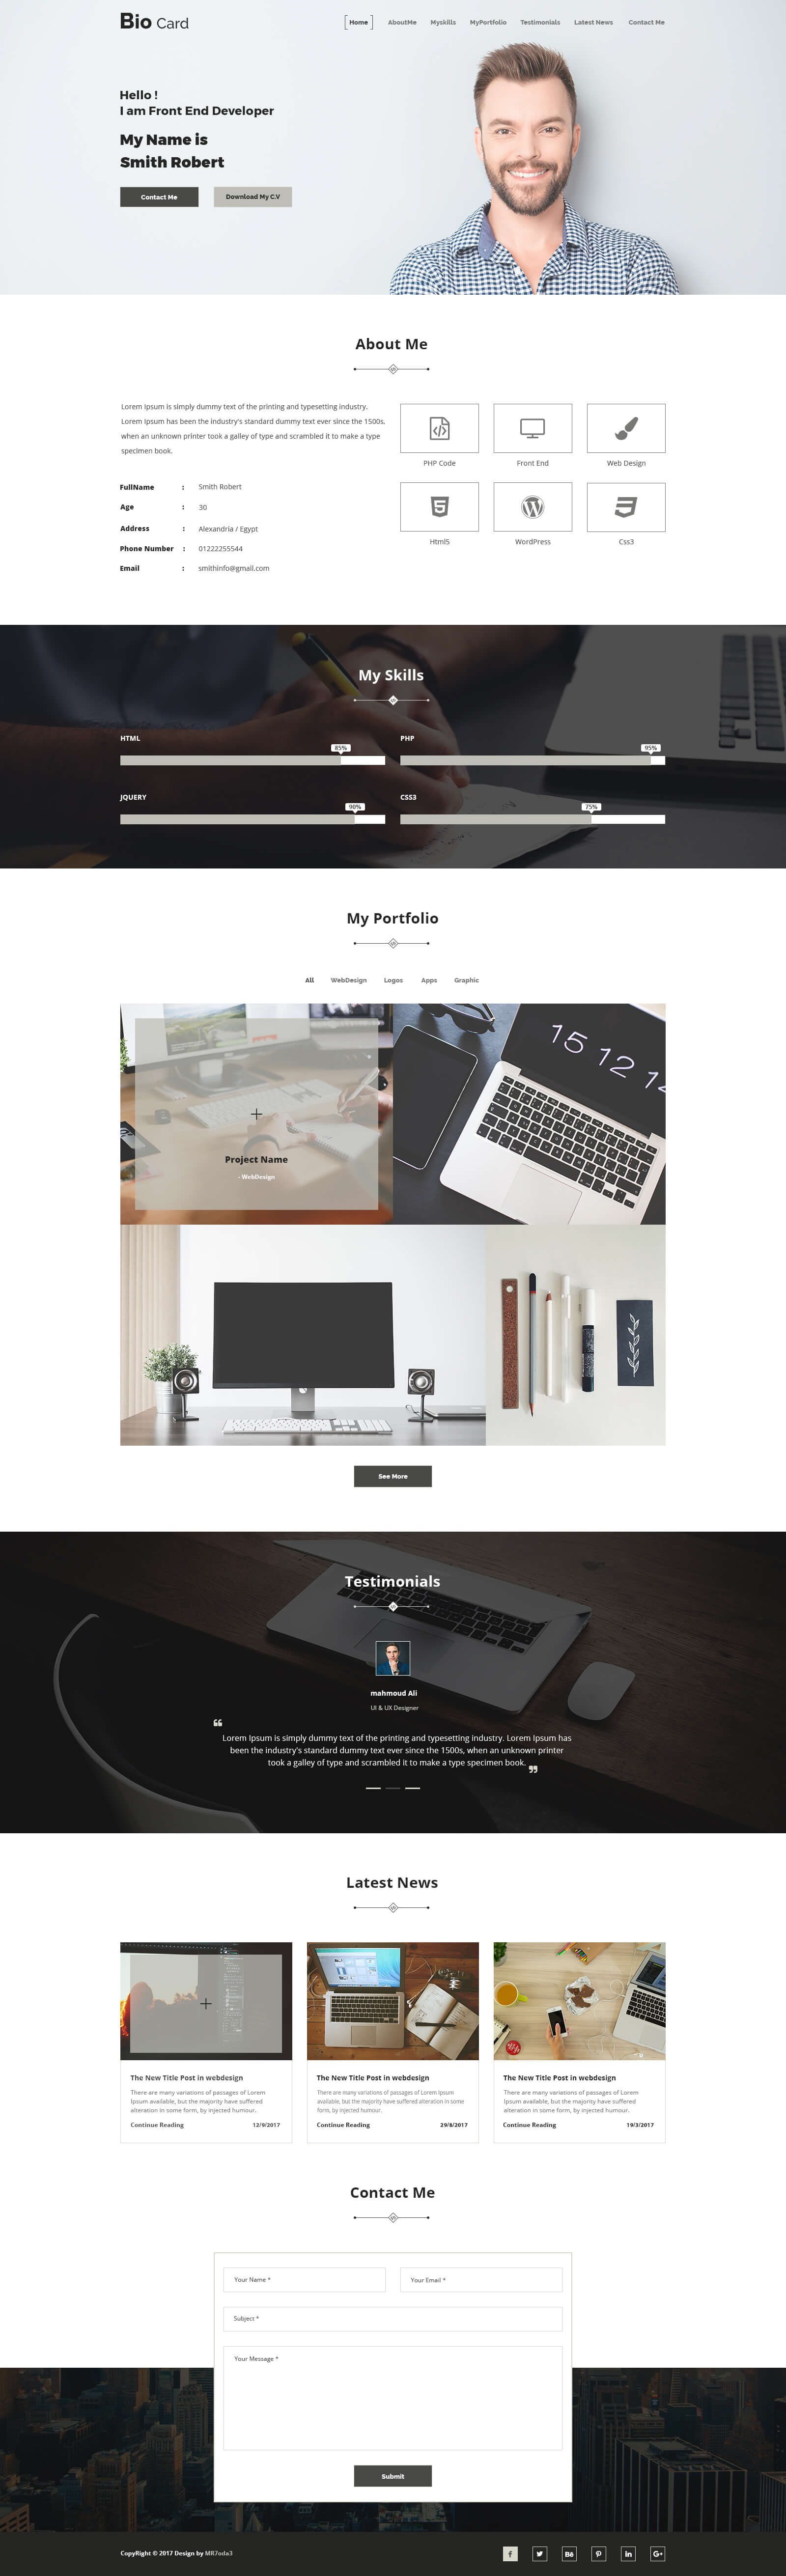 Biocard – Personal Portfolio Psd Template Intended For Bio Card Template